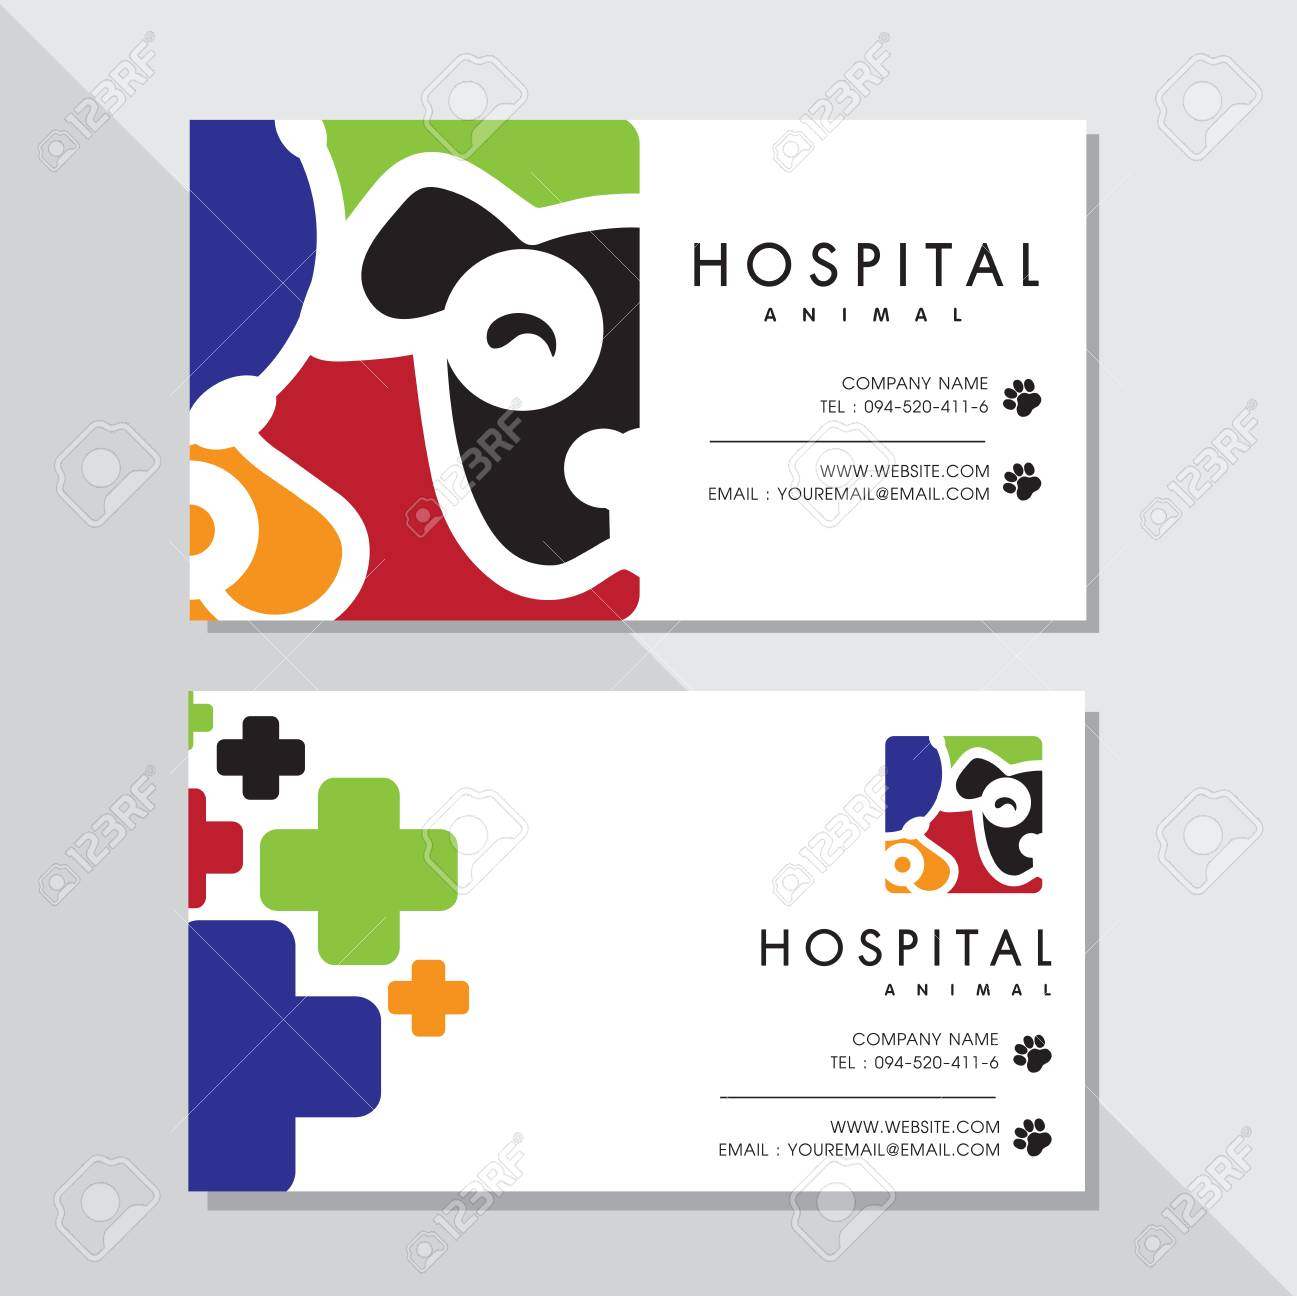 Business Card Vector Design And Animal Hospital Logo Royalty Free ...